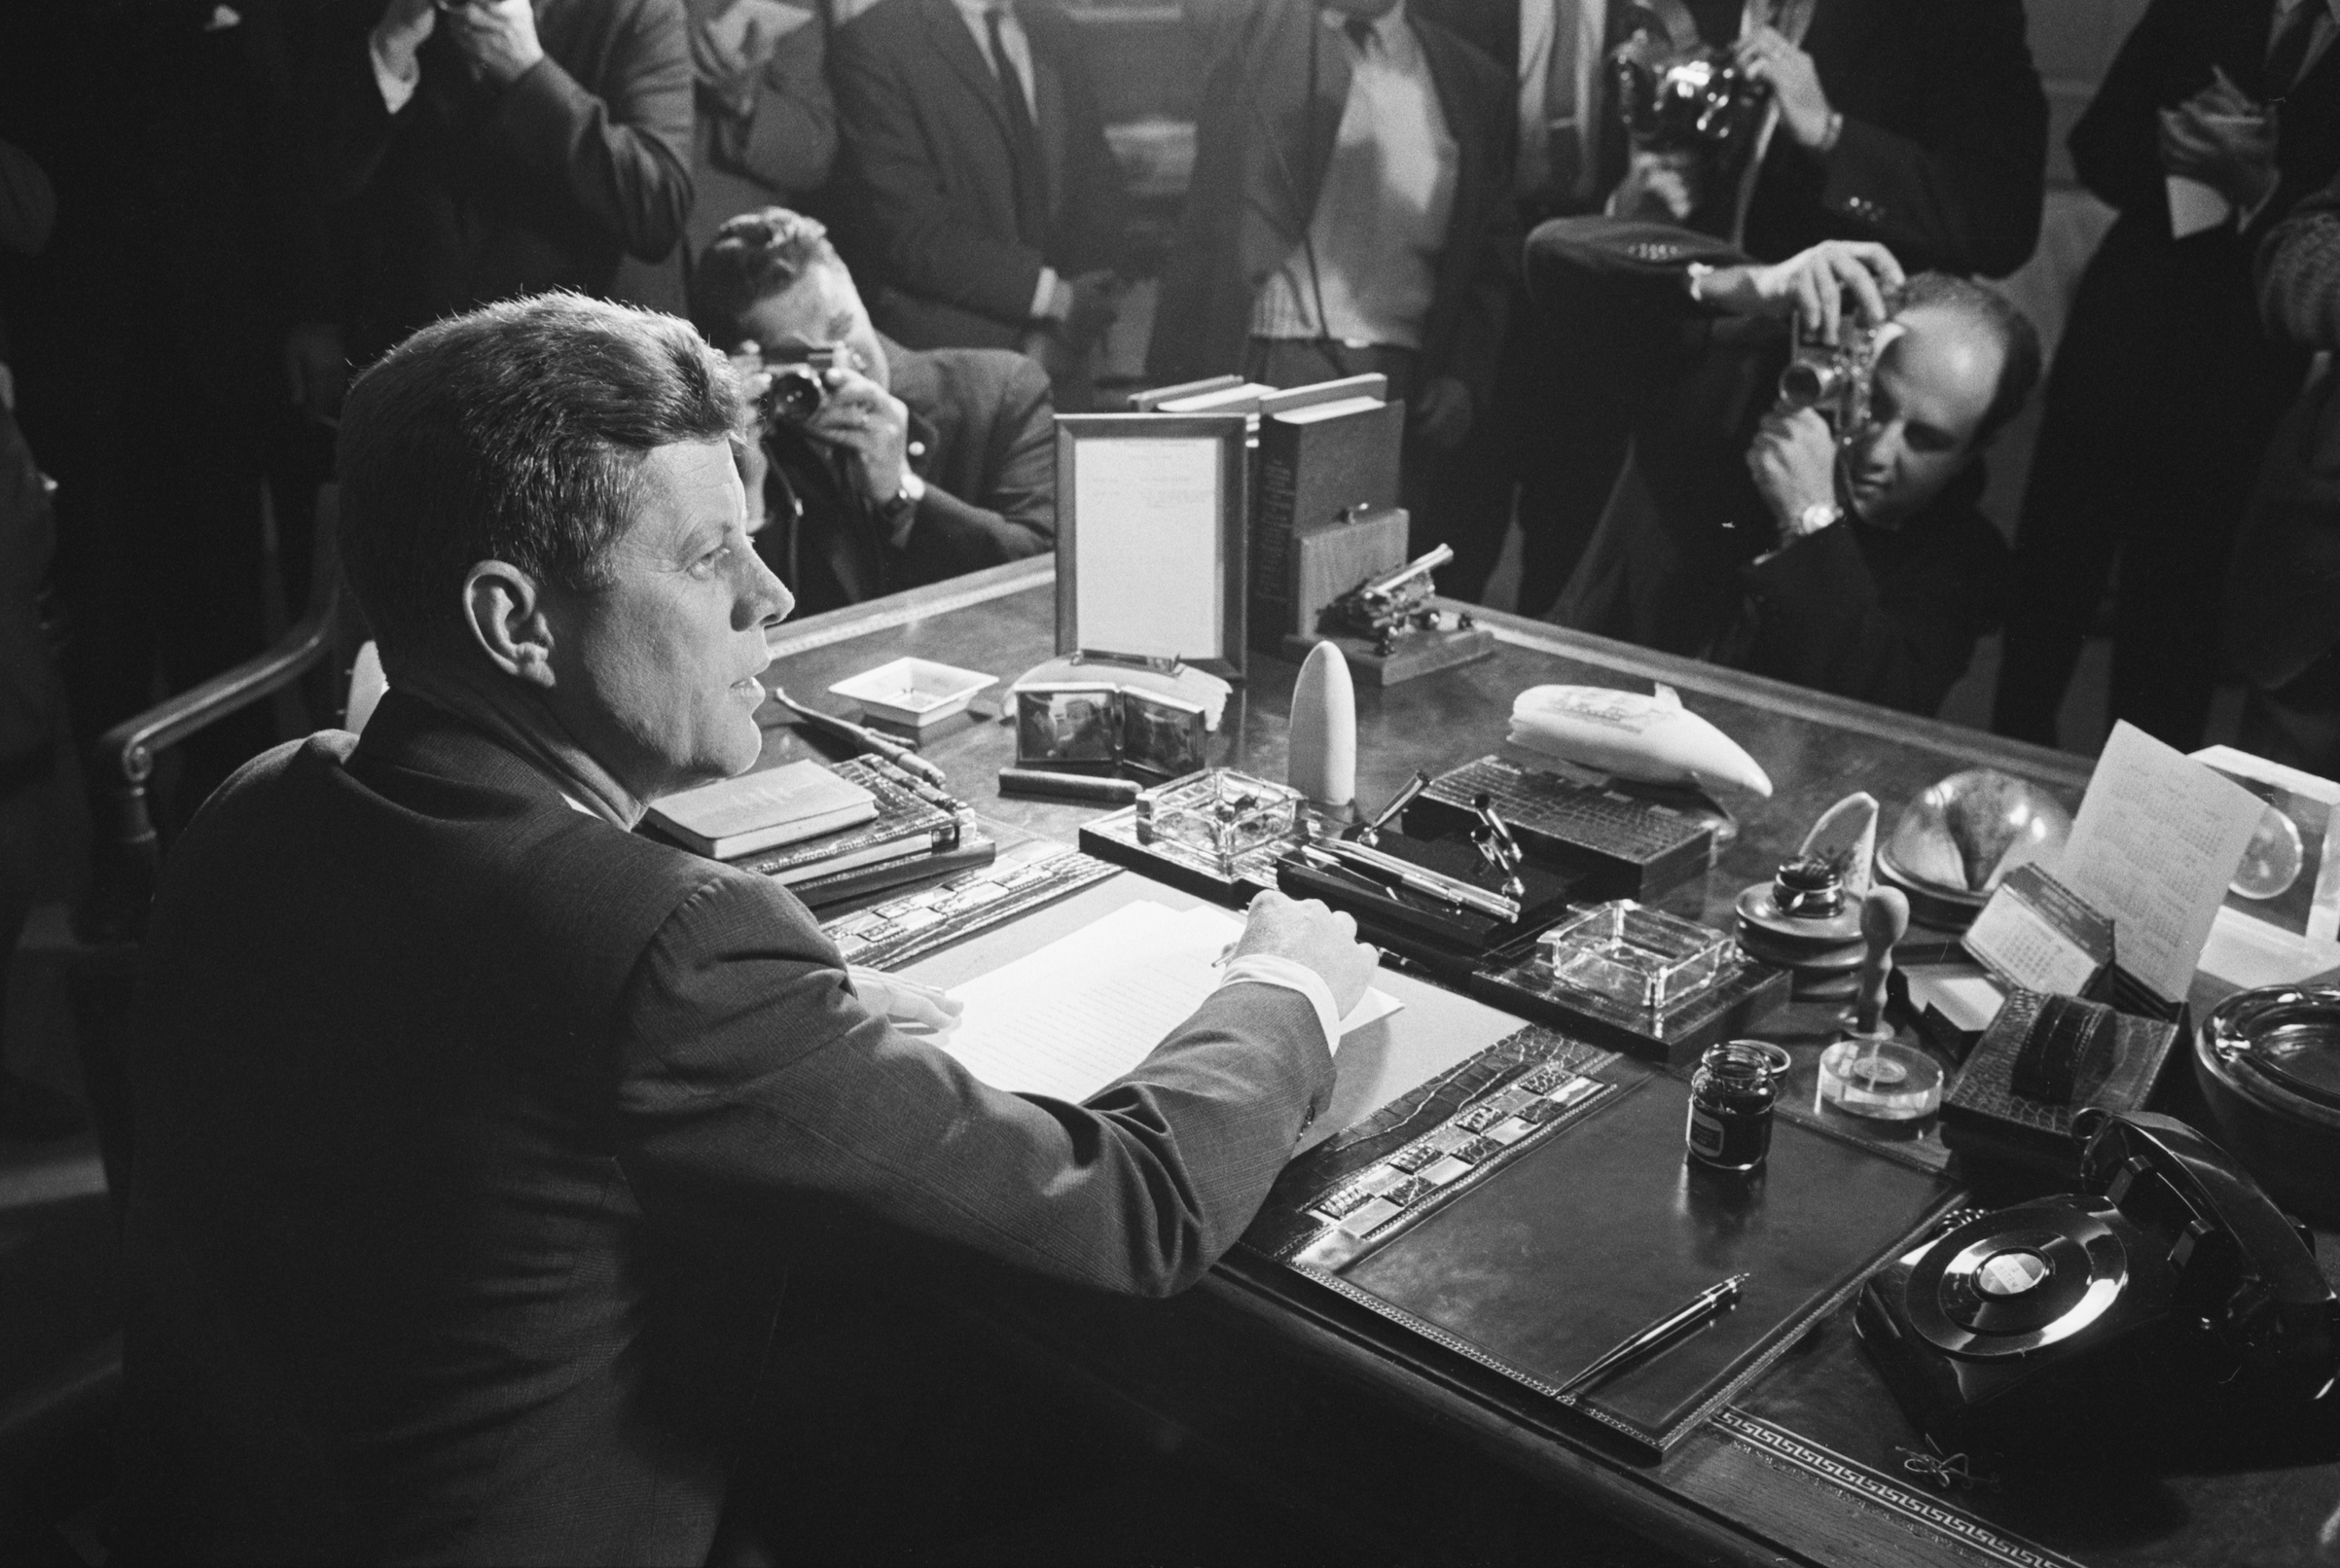 Reporters take pictures of President Kennedy behind his desk, after signing the arms embargo against Cuba on Oct. 23, 1962. The embargo effectively quarantined Cuba.